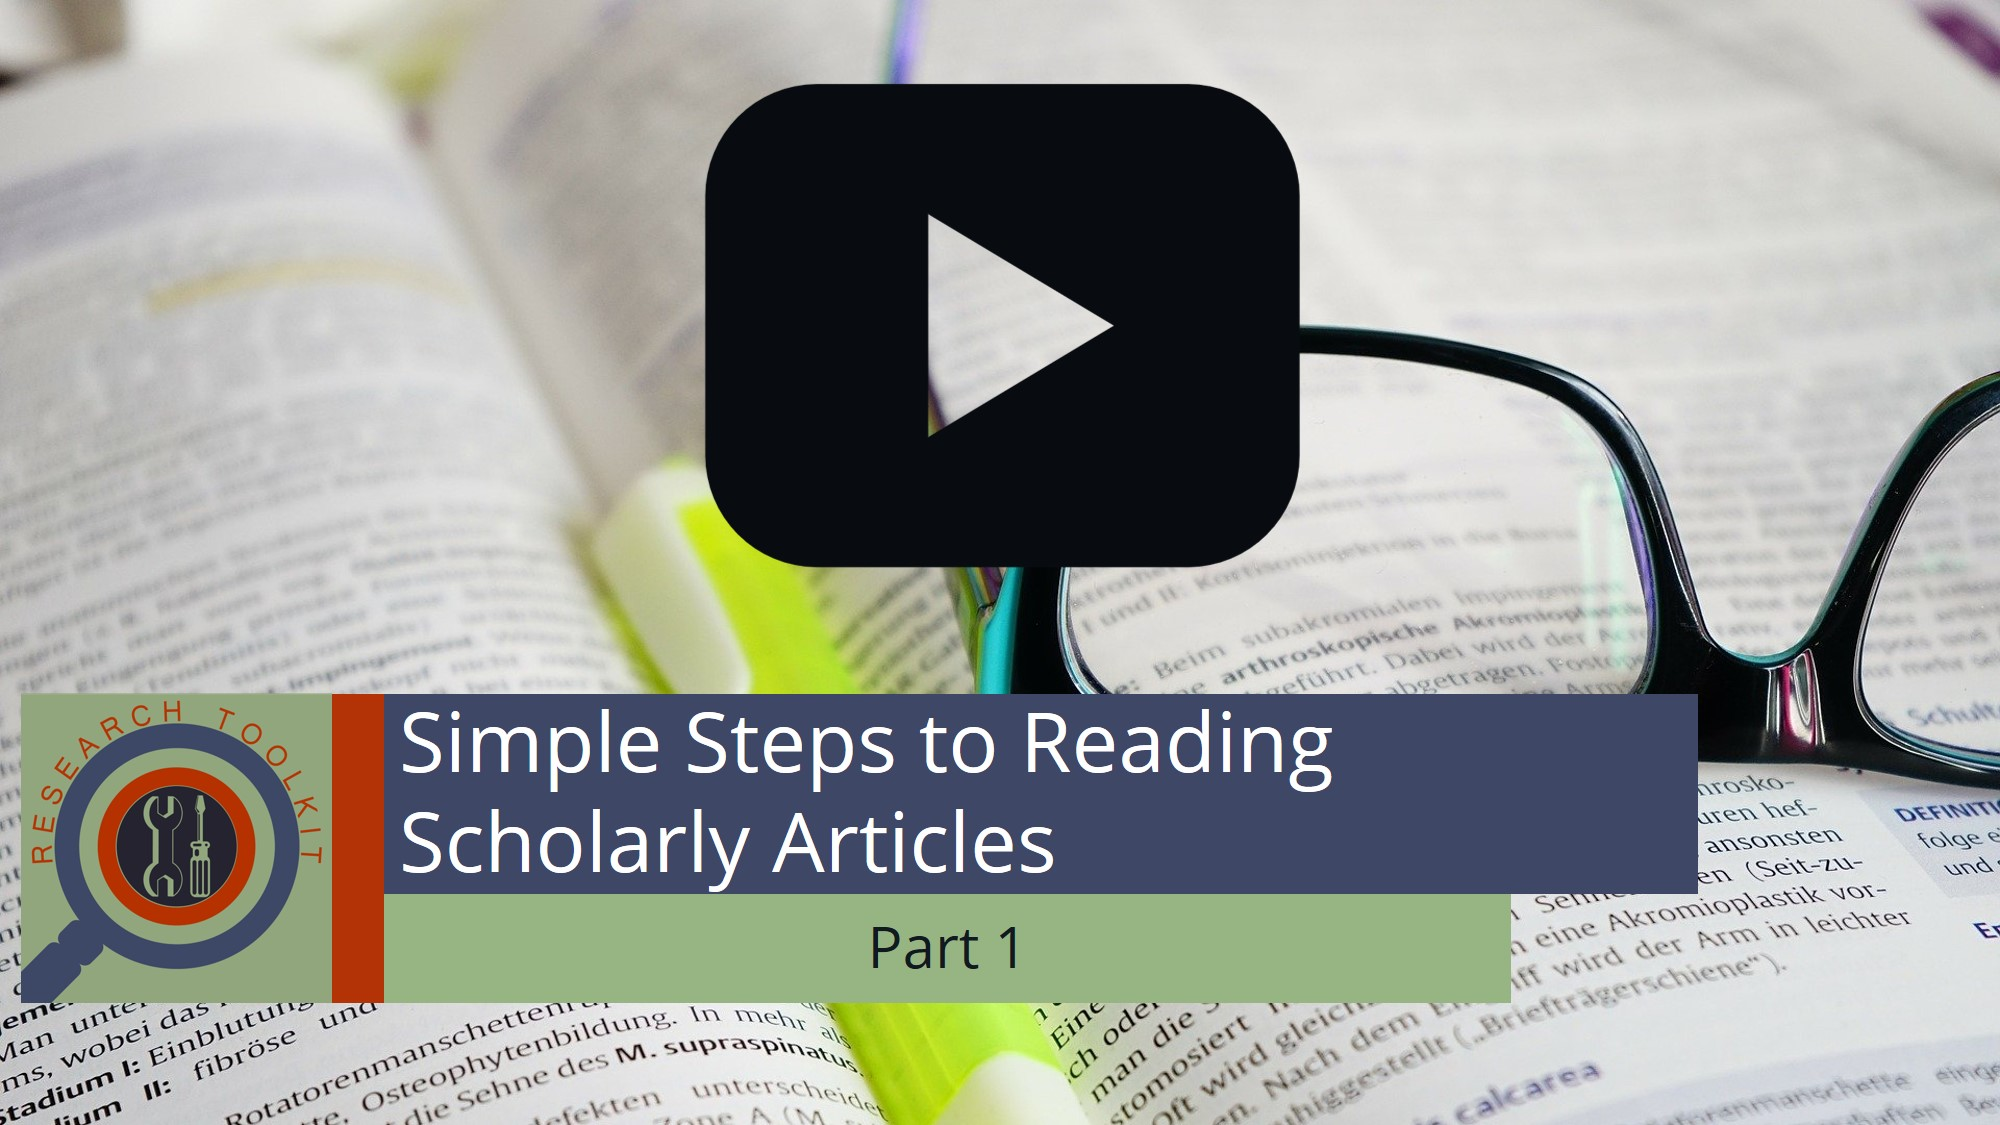 Simple Steps to Reading Scholarly Articles Part 1